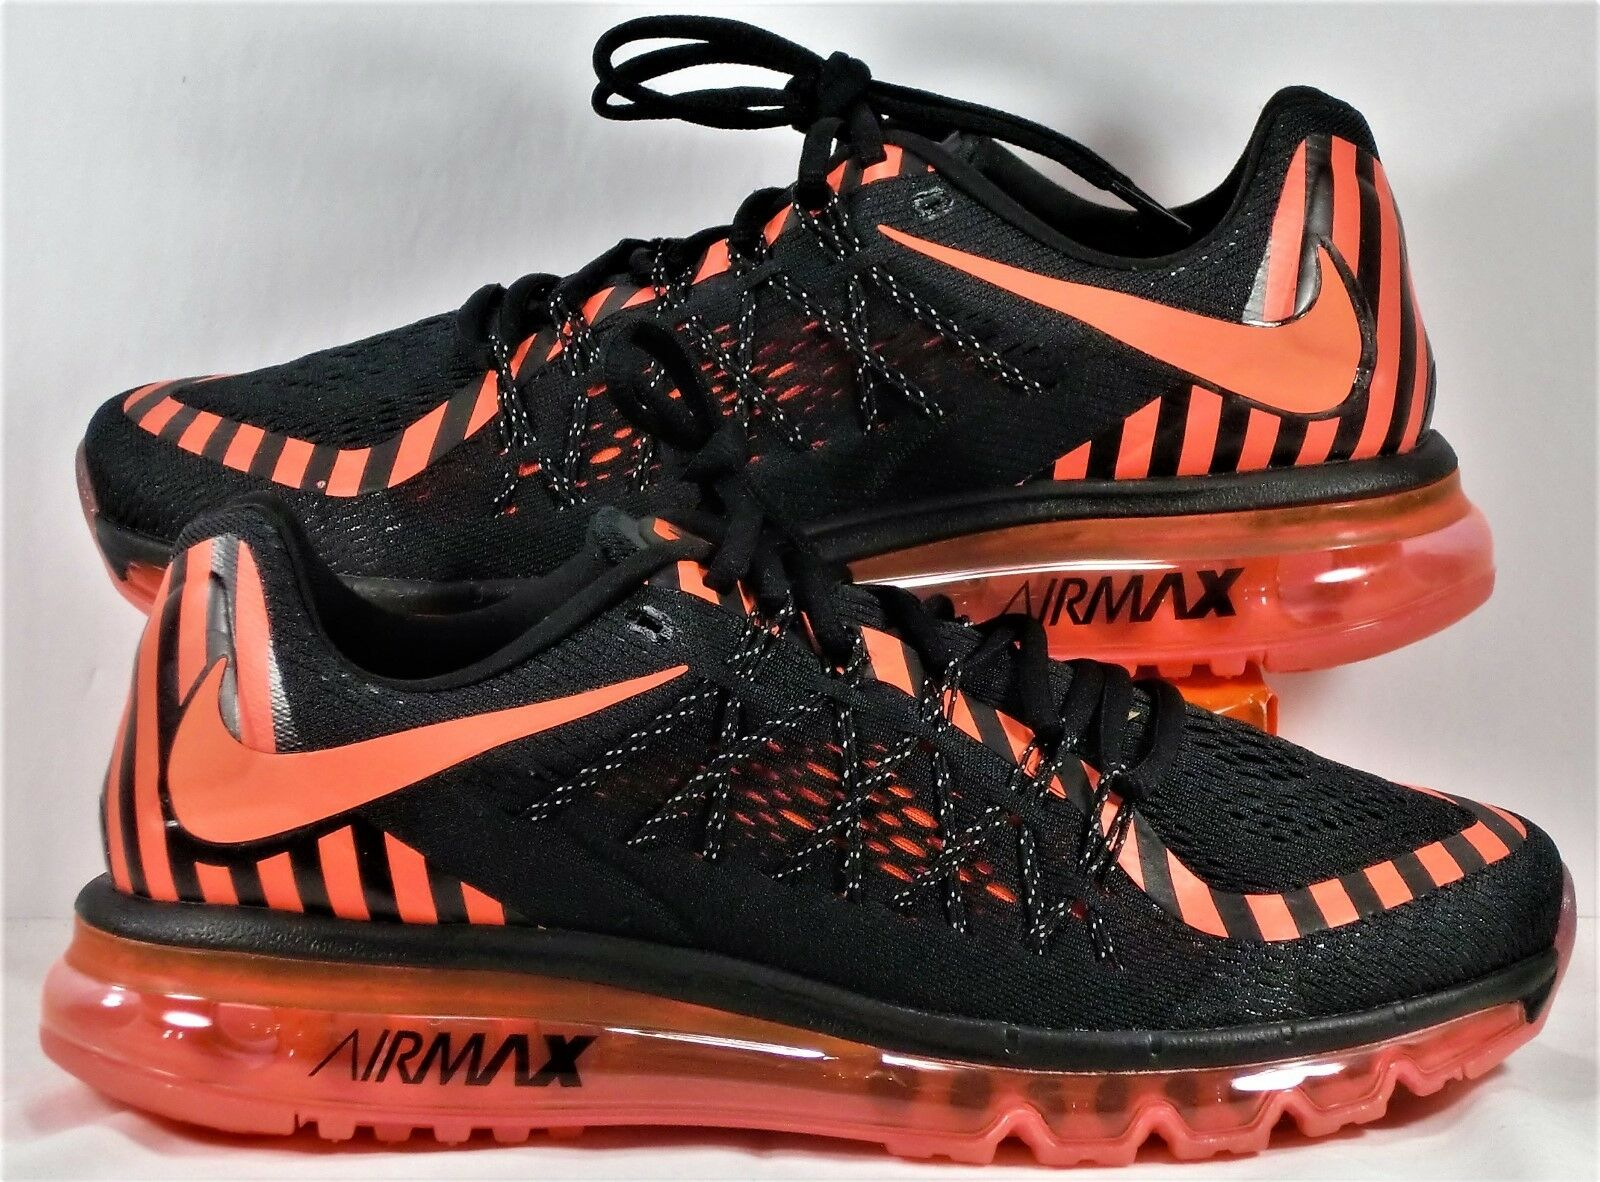 Nike Air Max 2015 Black & Hot Lava Pink Women Running shoes Sz 11 NEW 746683 011